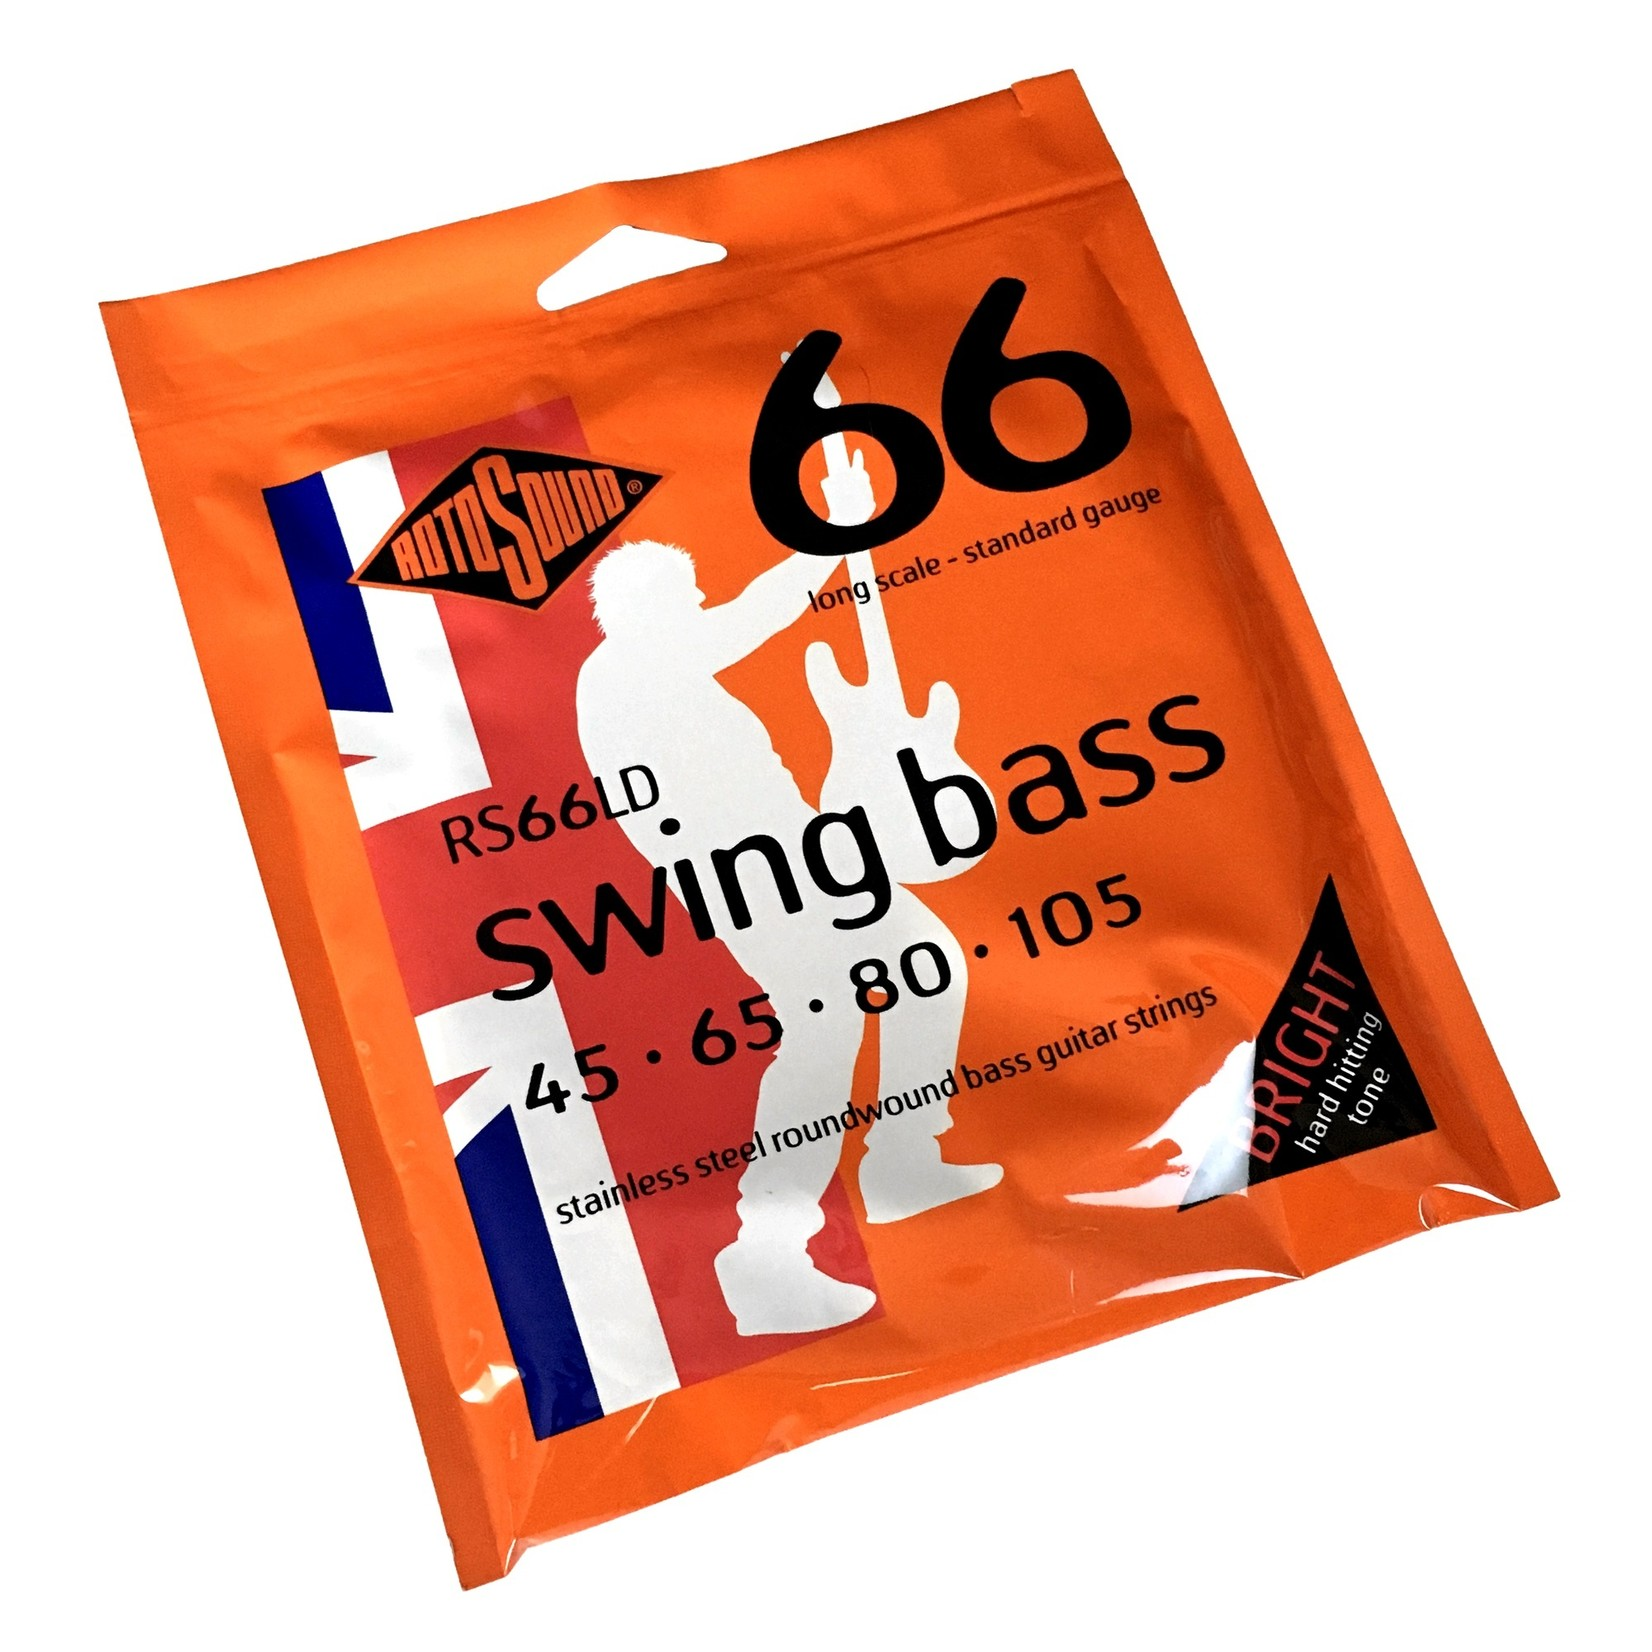 Rotosound Rotosound RS66LD Swing Bass 66 Stainless Steel Roundwound Strings (45-105)